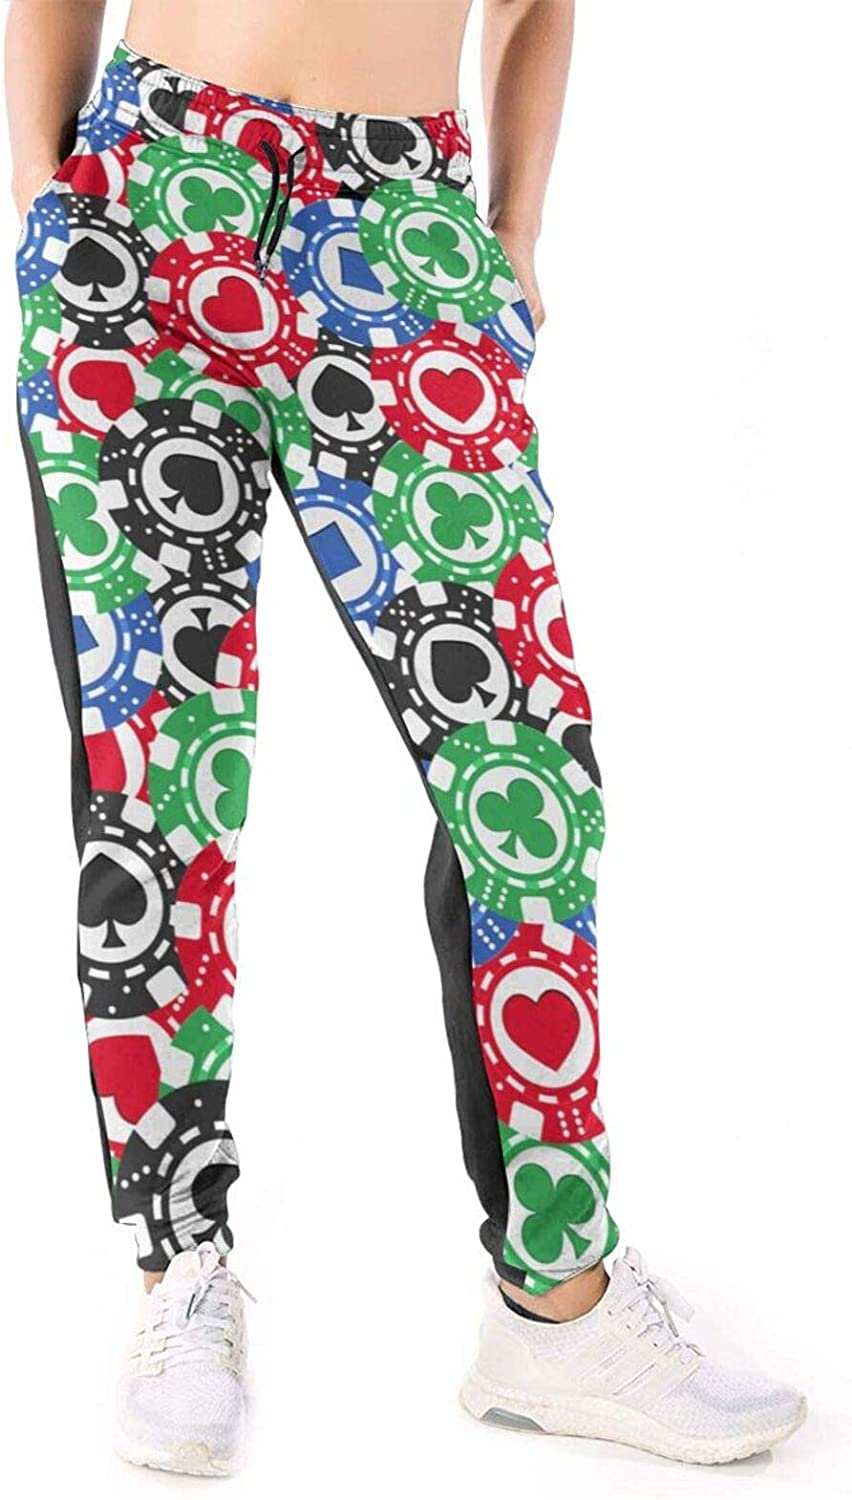 LONEA Women Joggers Pants Poker Chips Gambling Colorful Athletic Sweatpants with Pockets Casual Trousers Baggy